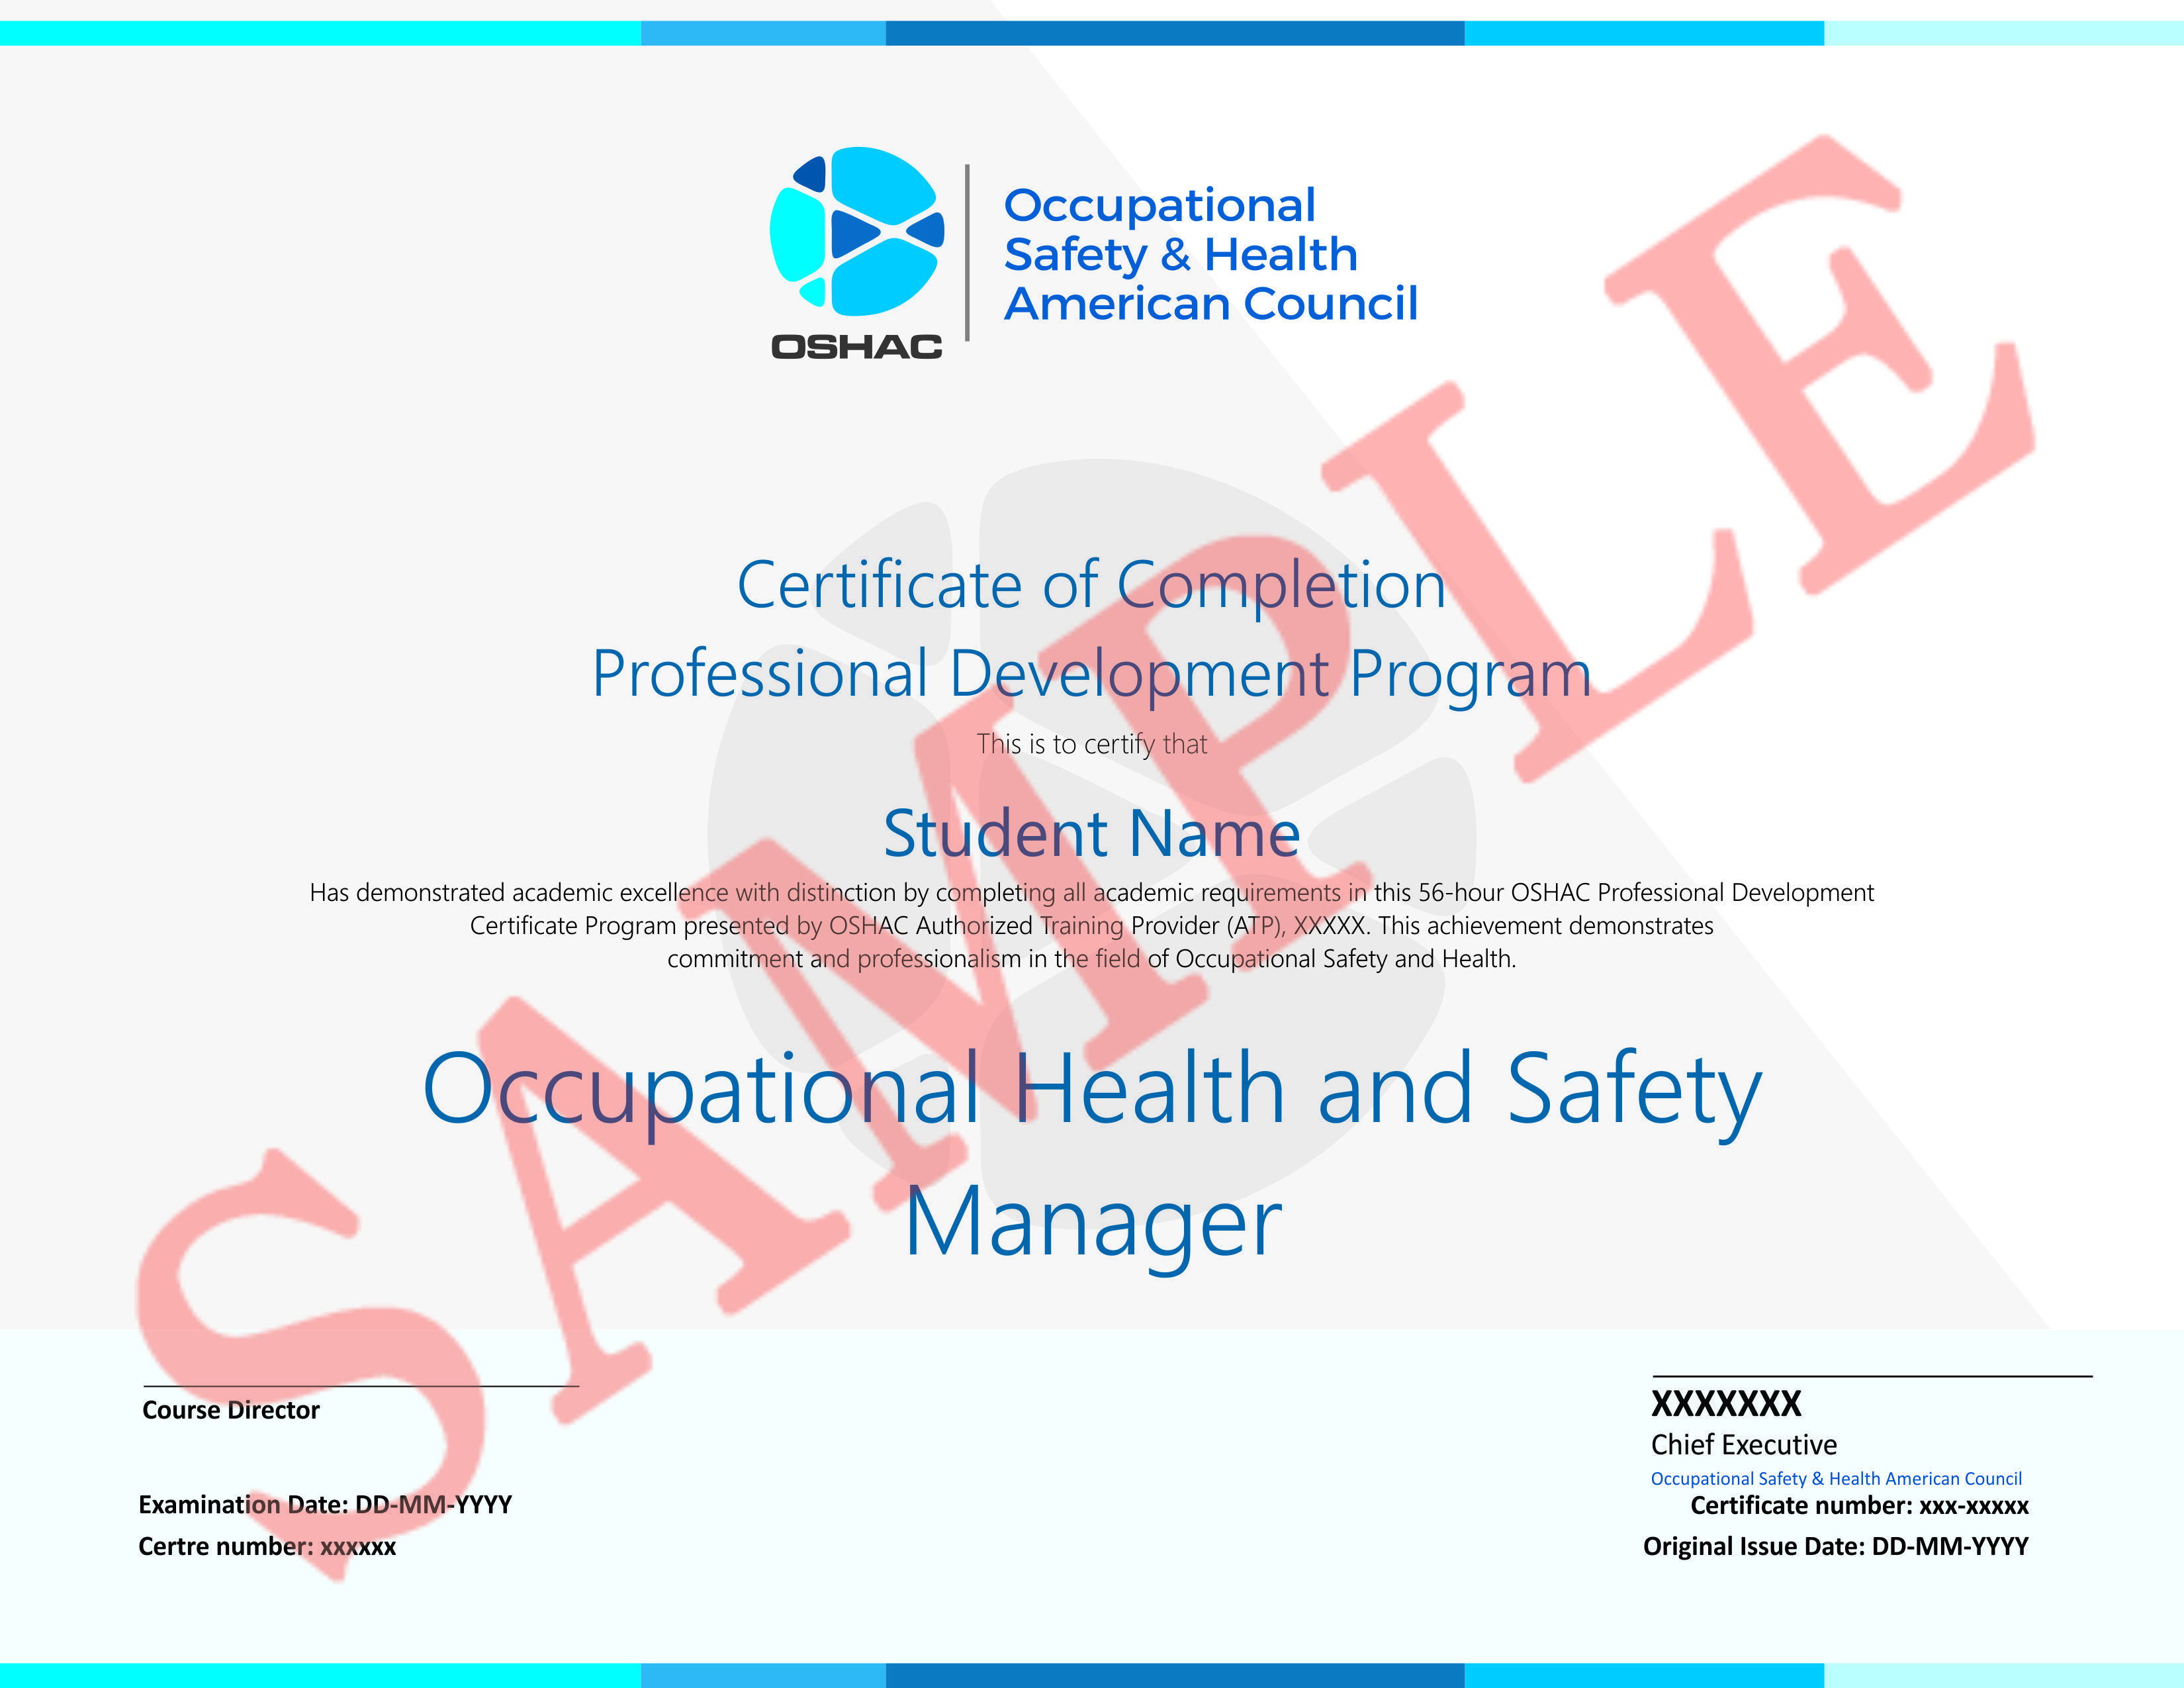 Companies hire occupational safety and health managers to